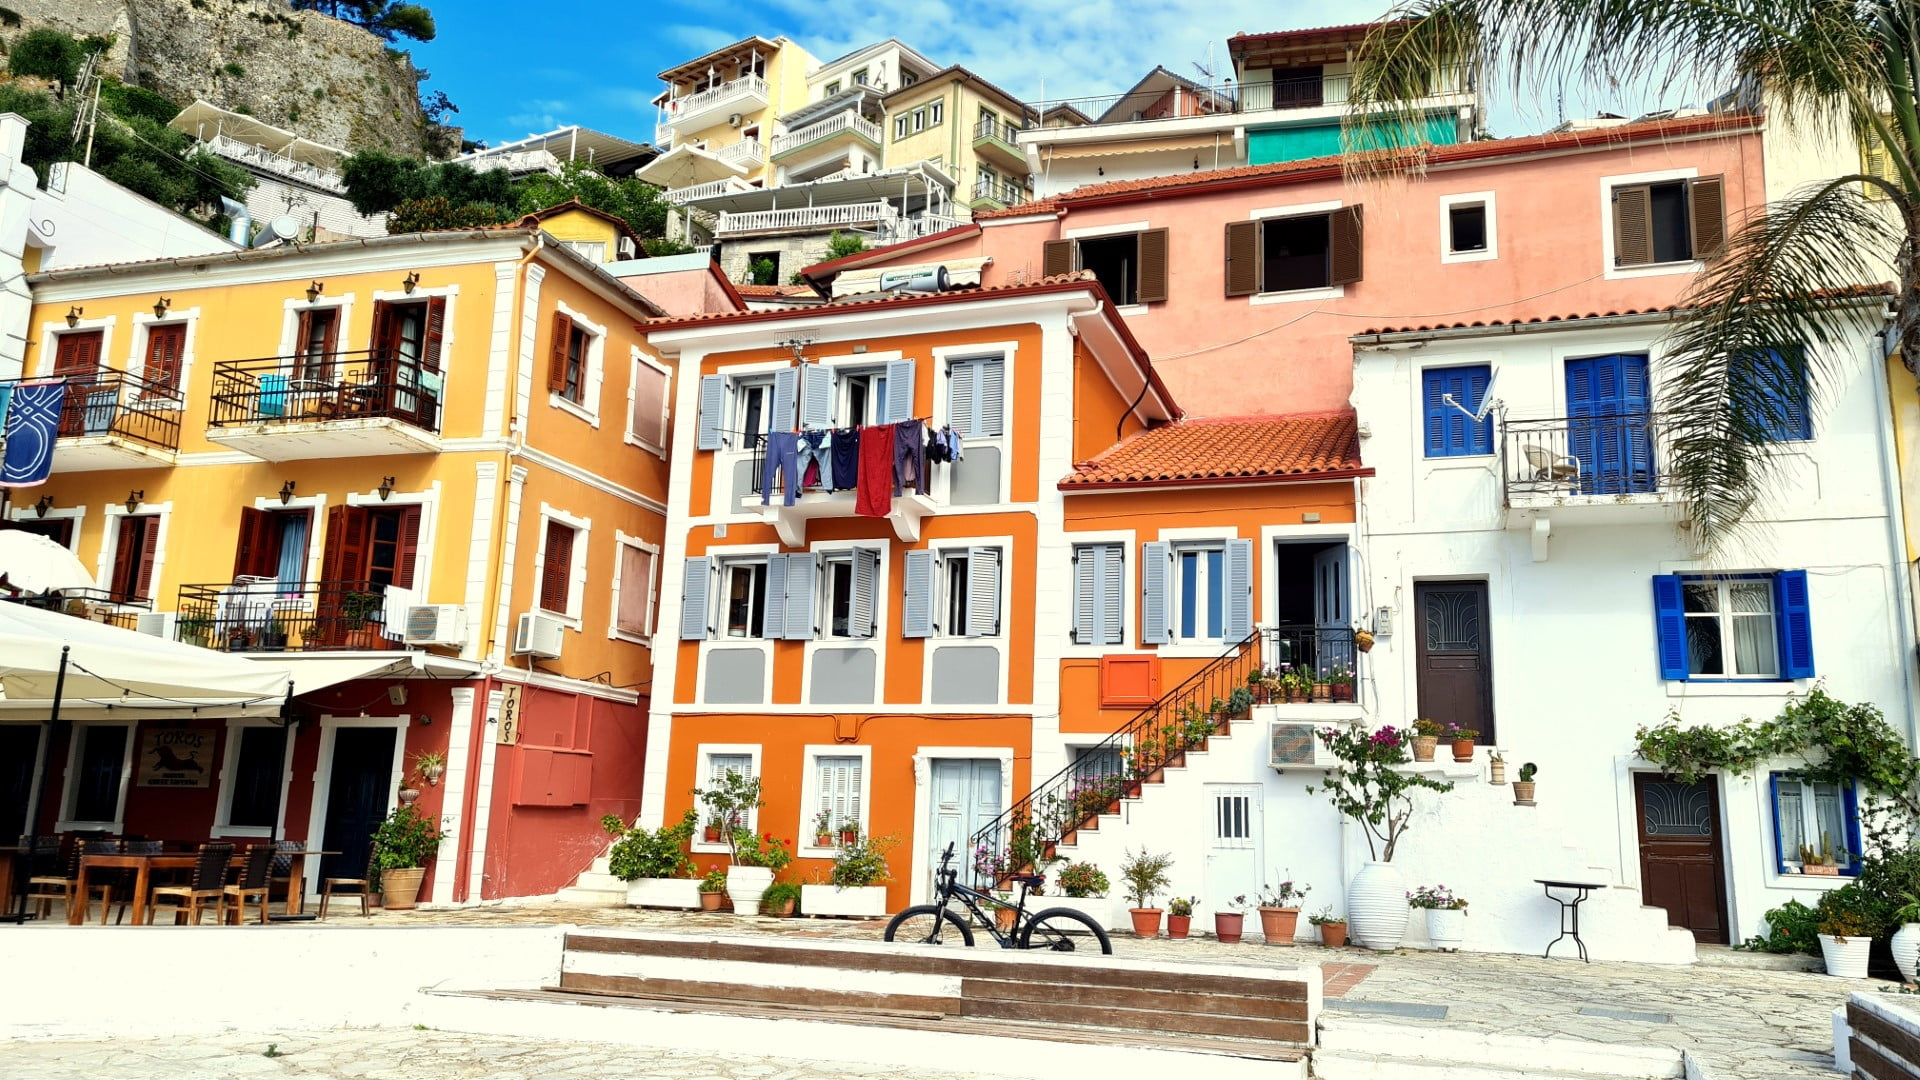 Ionian architecture in Greece Glimpses of the World